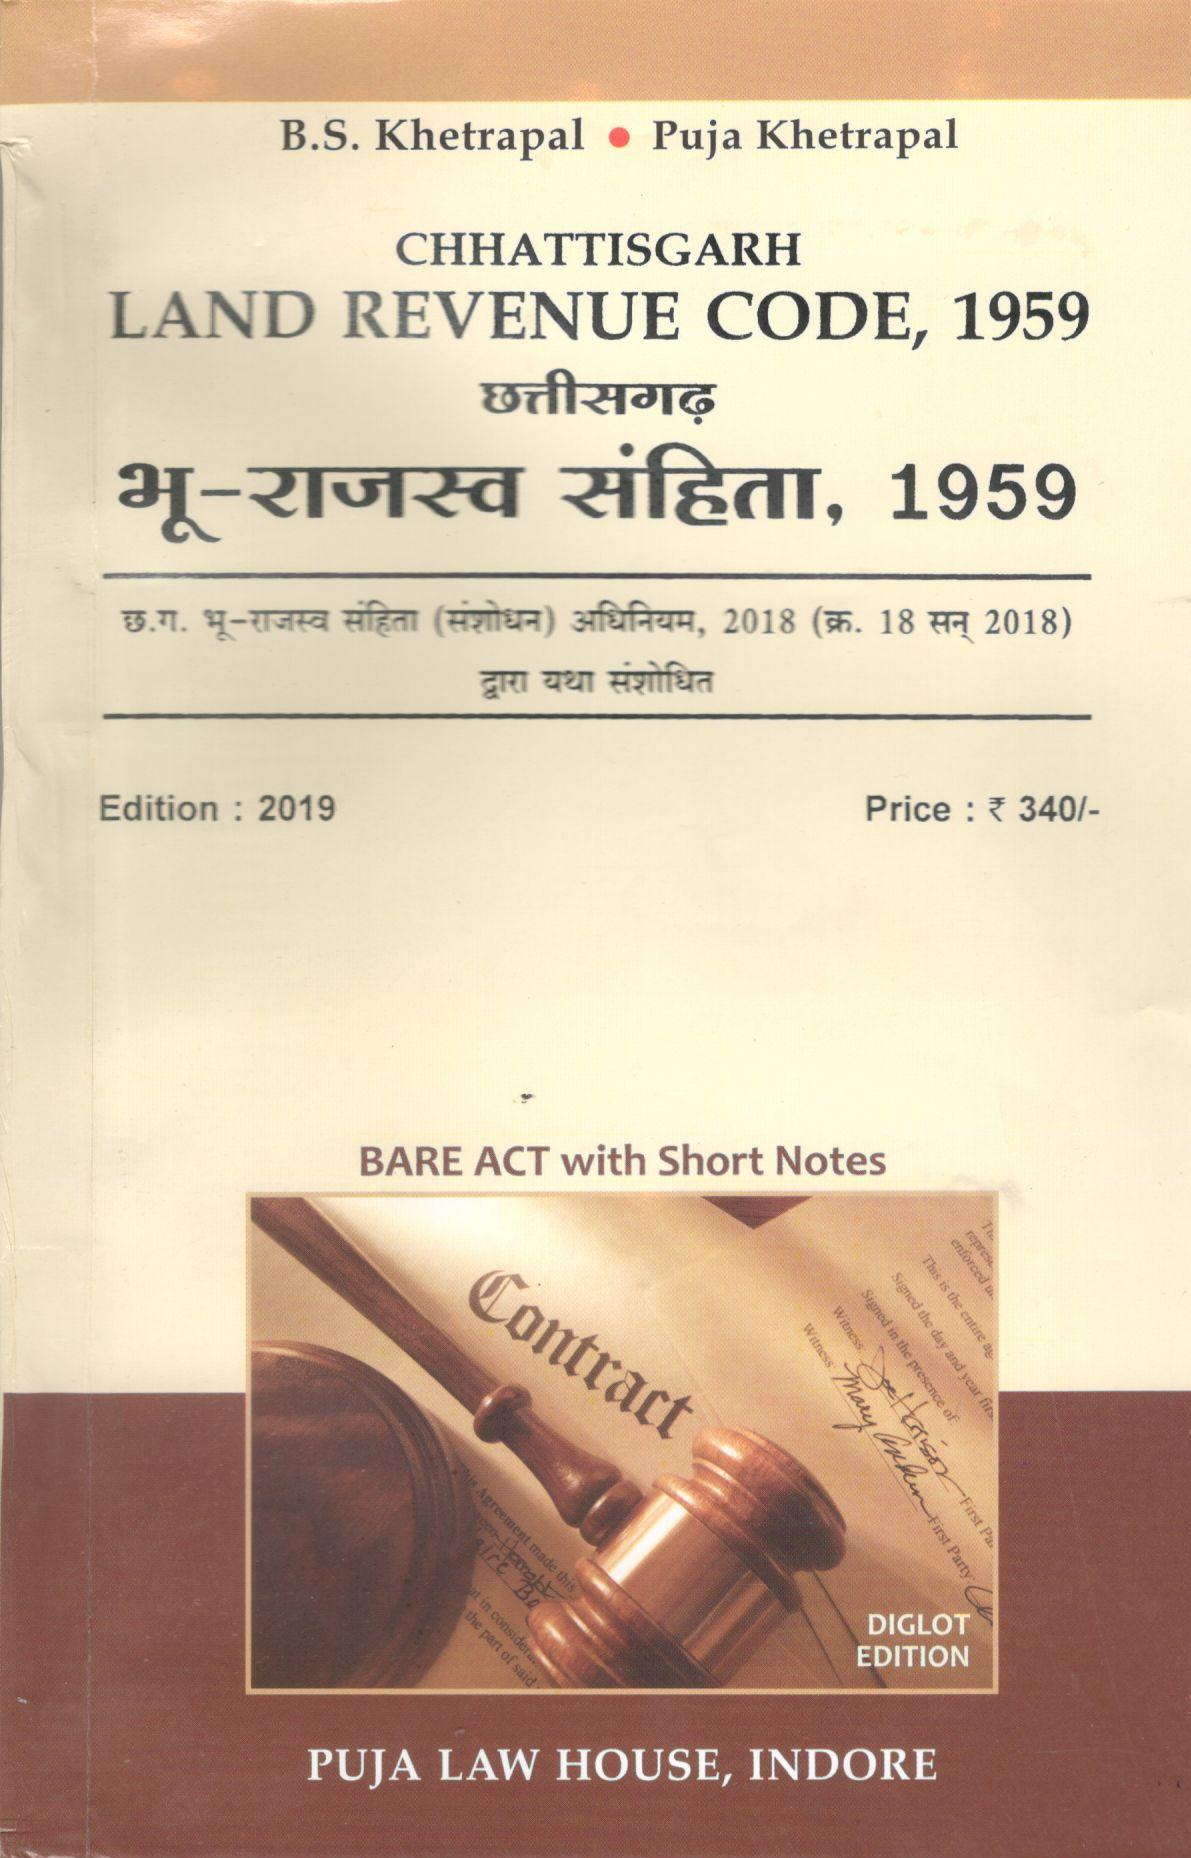 खेत�रपाल - छ. ग. भू-राजस�व संहिता, 1959 / khetrapal - C.G. Land Revenue code, 1959